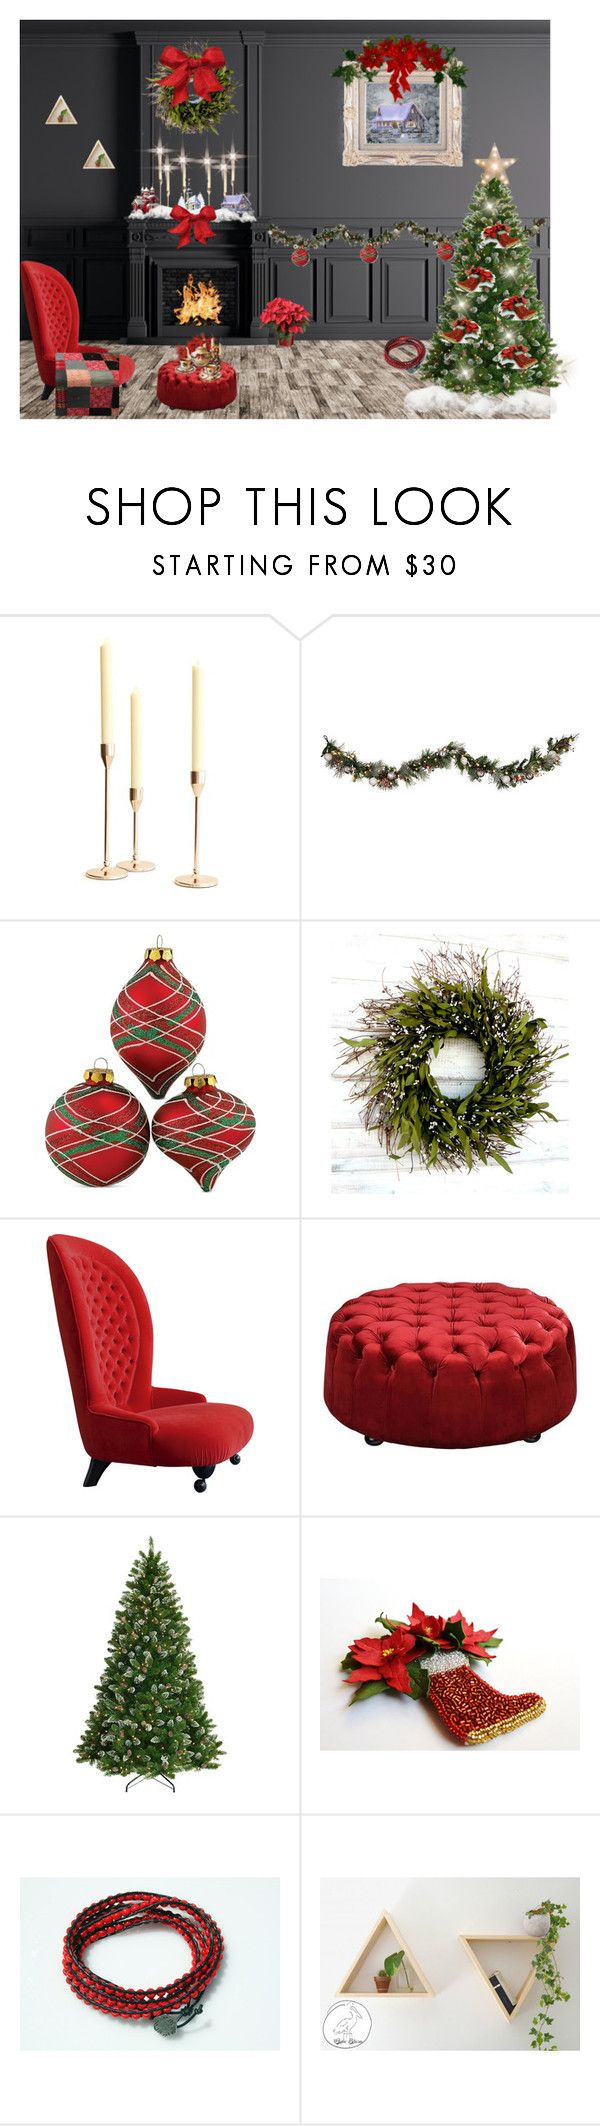 *A Warm and Cozee Christmas* by cozeequilts on Polyvore featuring National Tree Company, Moe's, Improvements, Kurt Adler, Pottery Barn and rustic